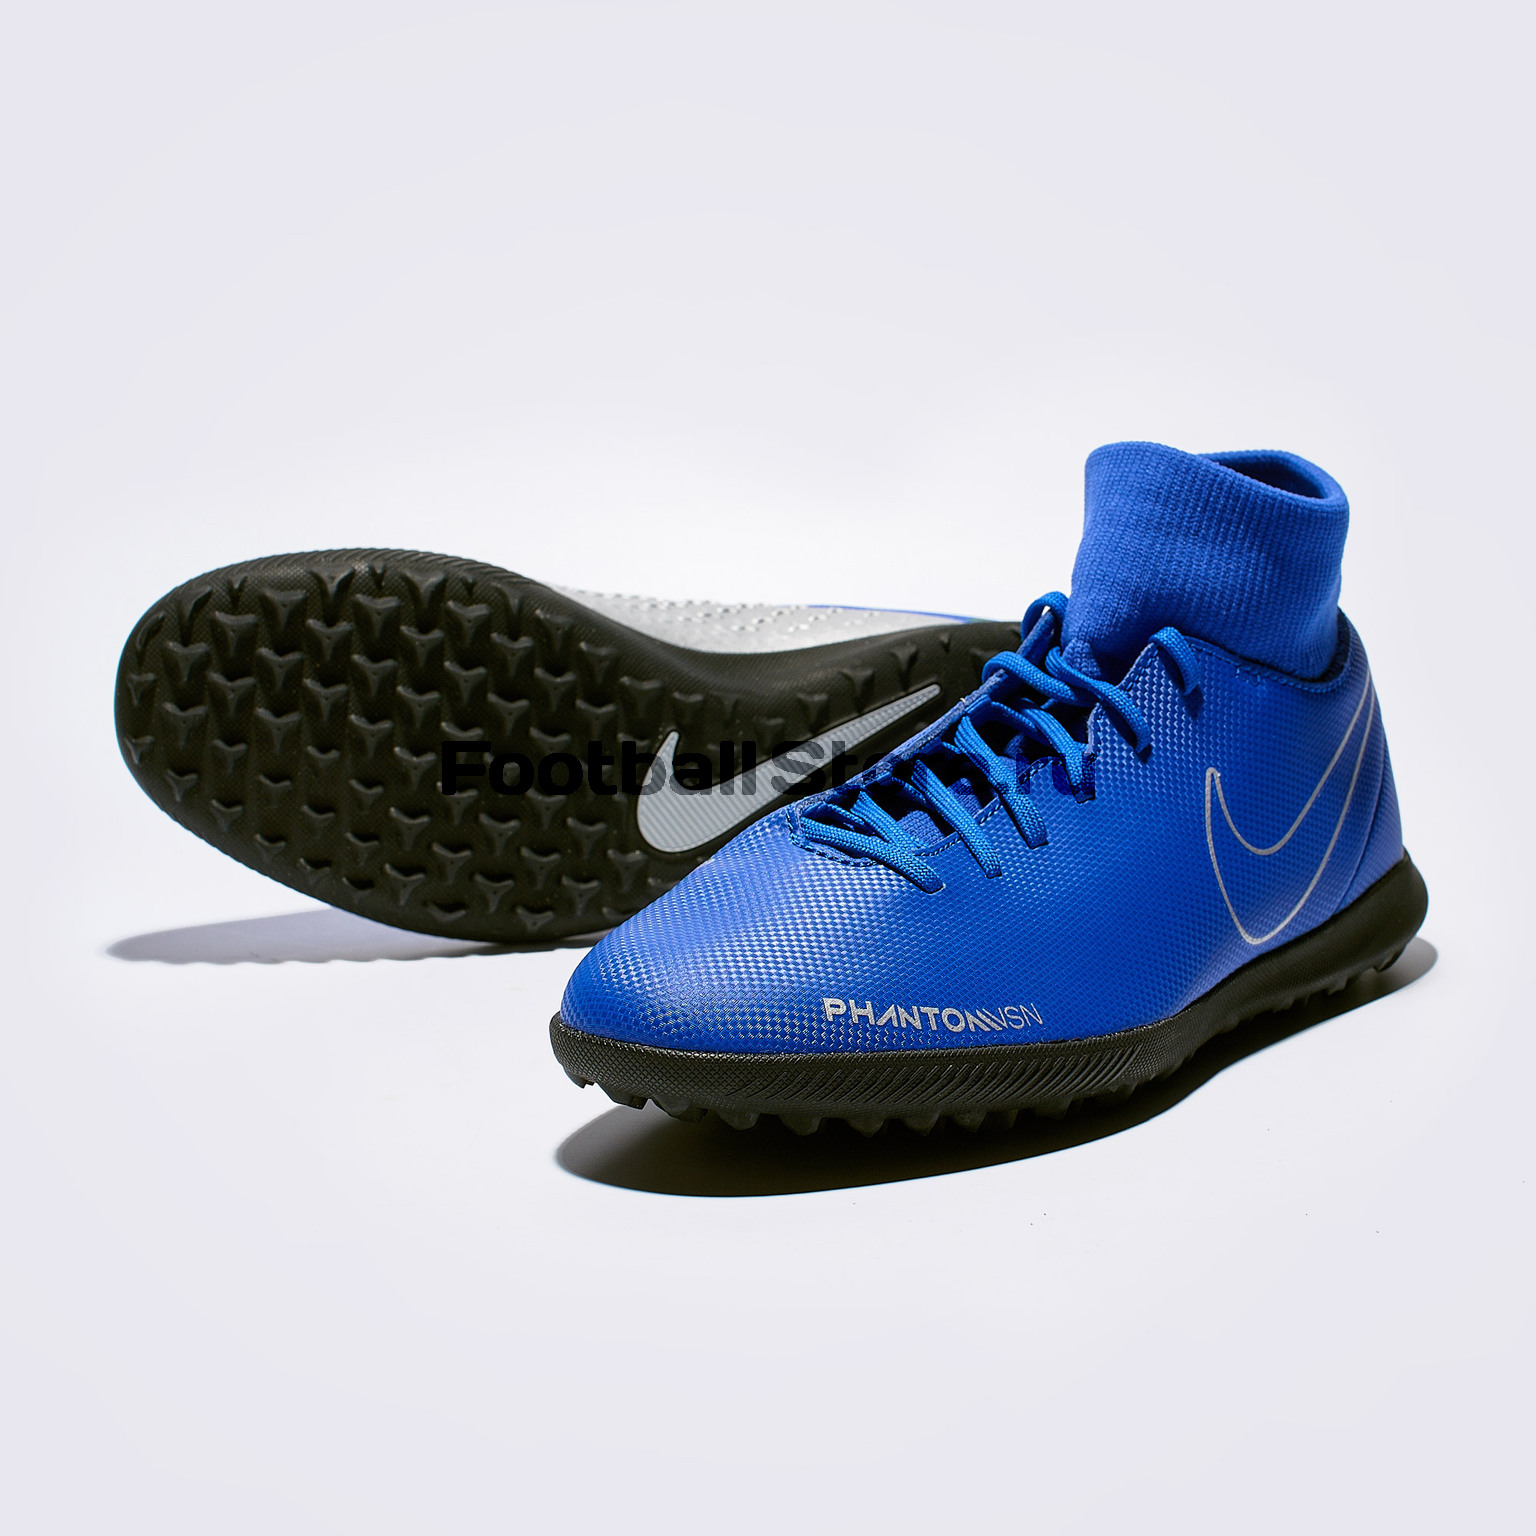 Шиповки Nike Phantom Vision Club DF TF AO3273-400 бутсы nike шиповки nike jr tiempox legend vi tf 819191 018